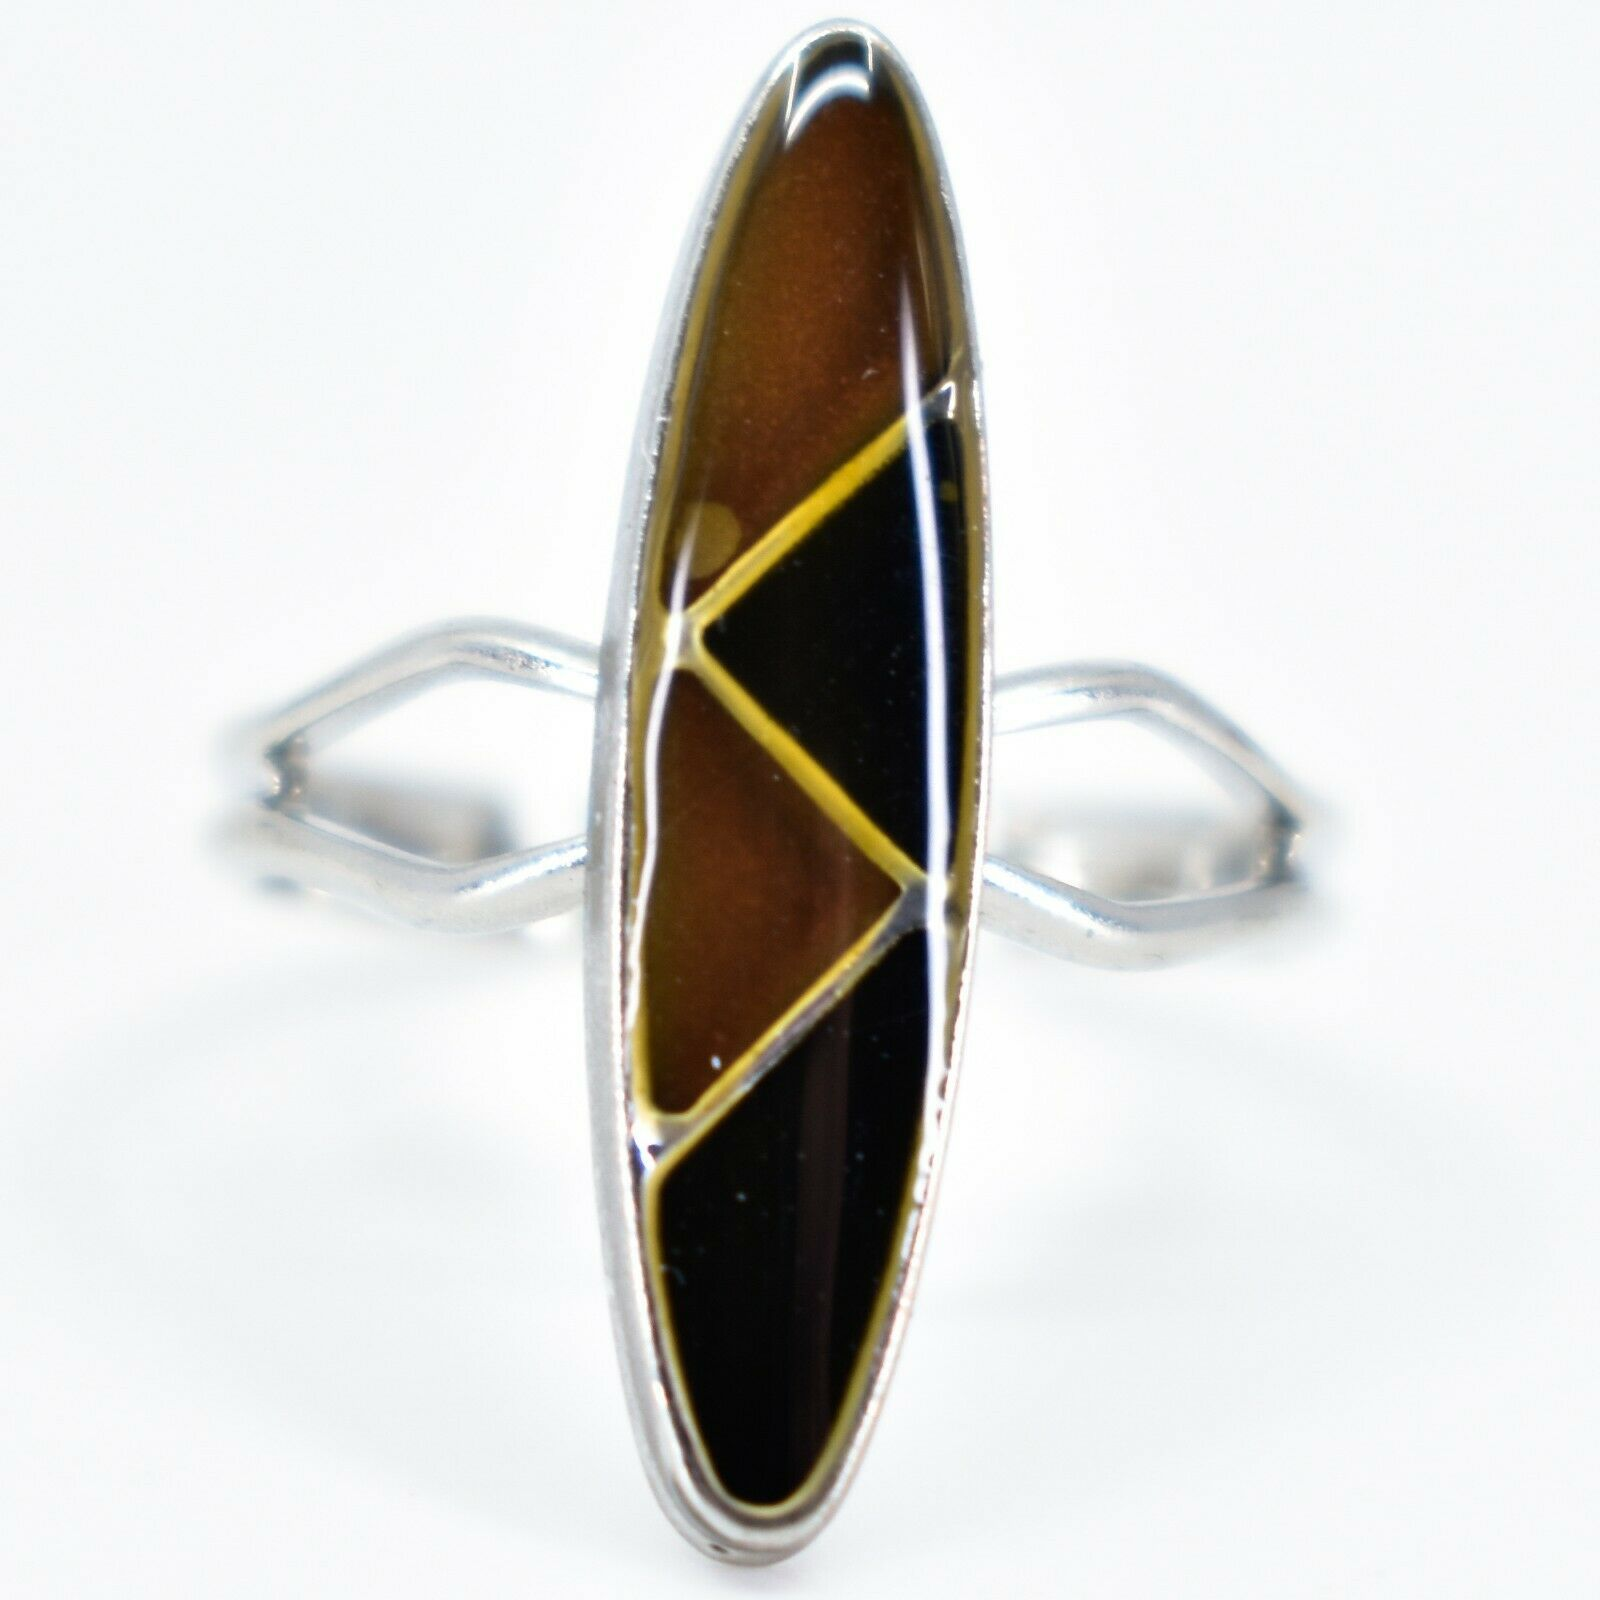 Silver Tone Surf Oval & Triangle Multi-Color Changing Adjustable Mood Ring